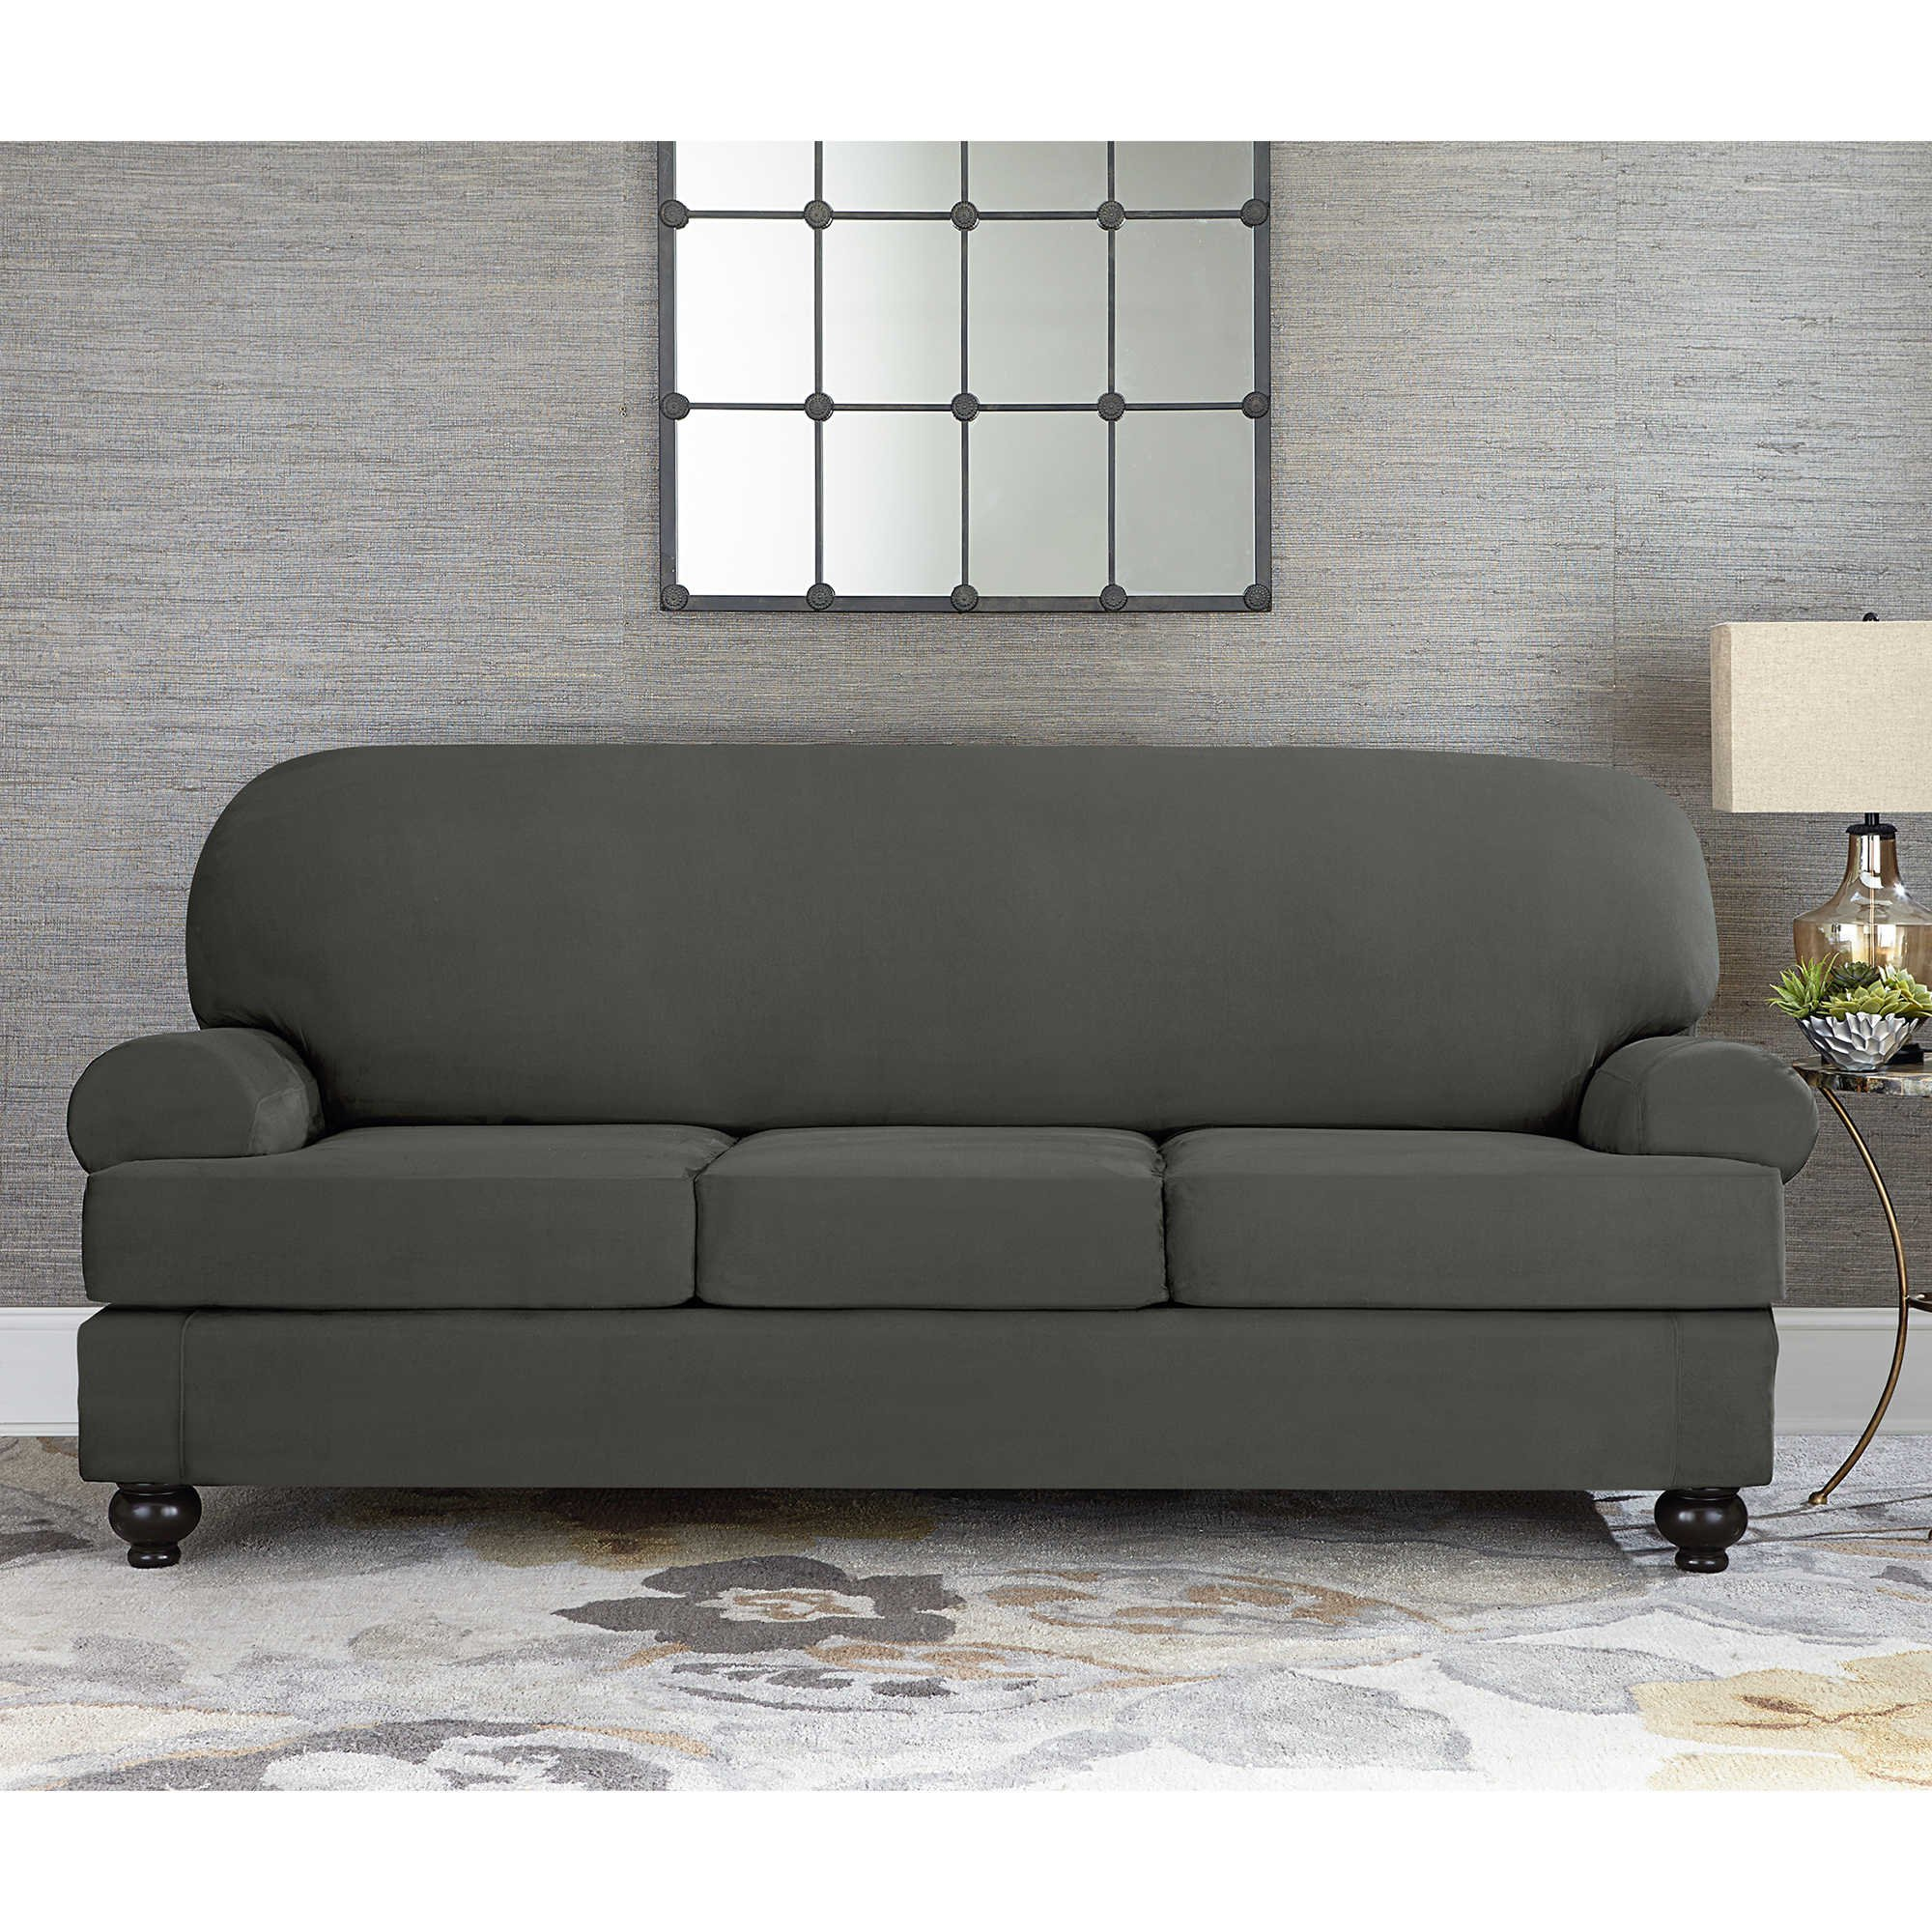 Sure Fit Designer Suede Convertible T-Cushion Sofa 3-Cushion Slipcover - Gray (SF44610)